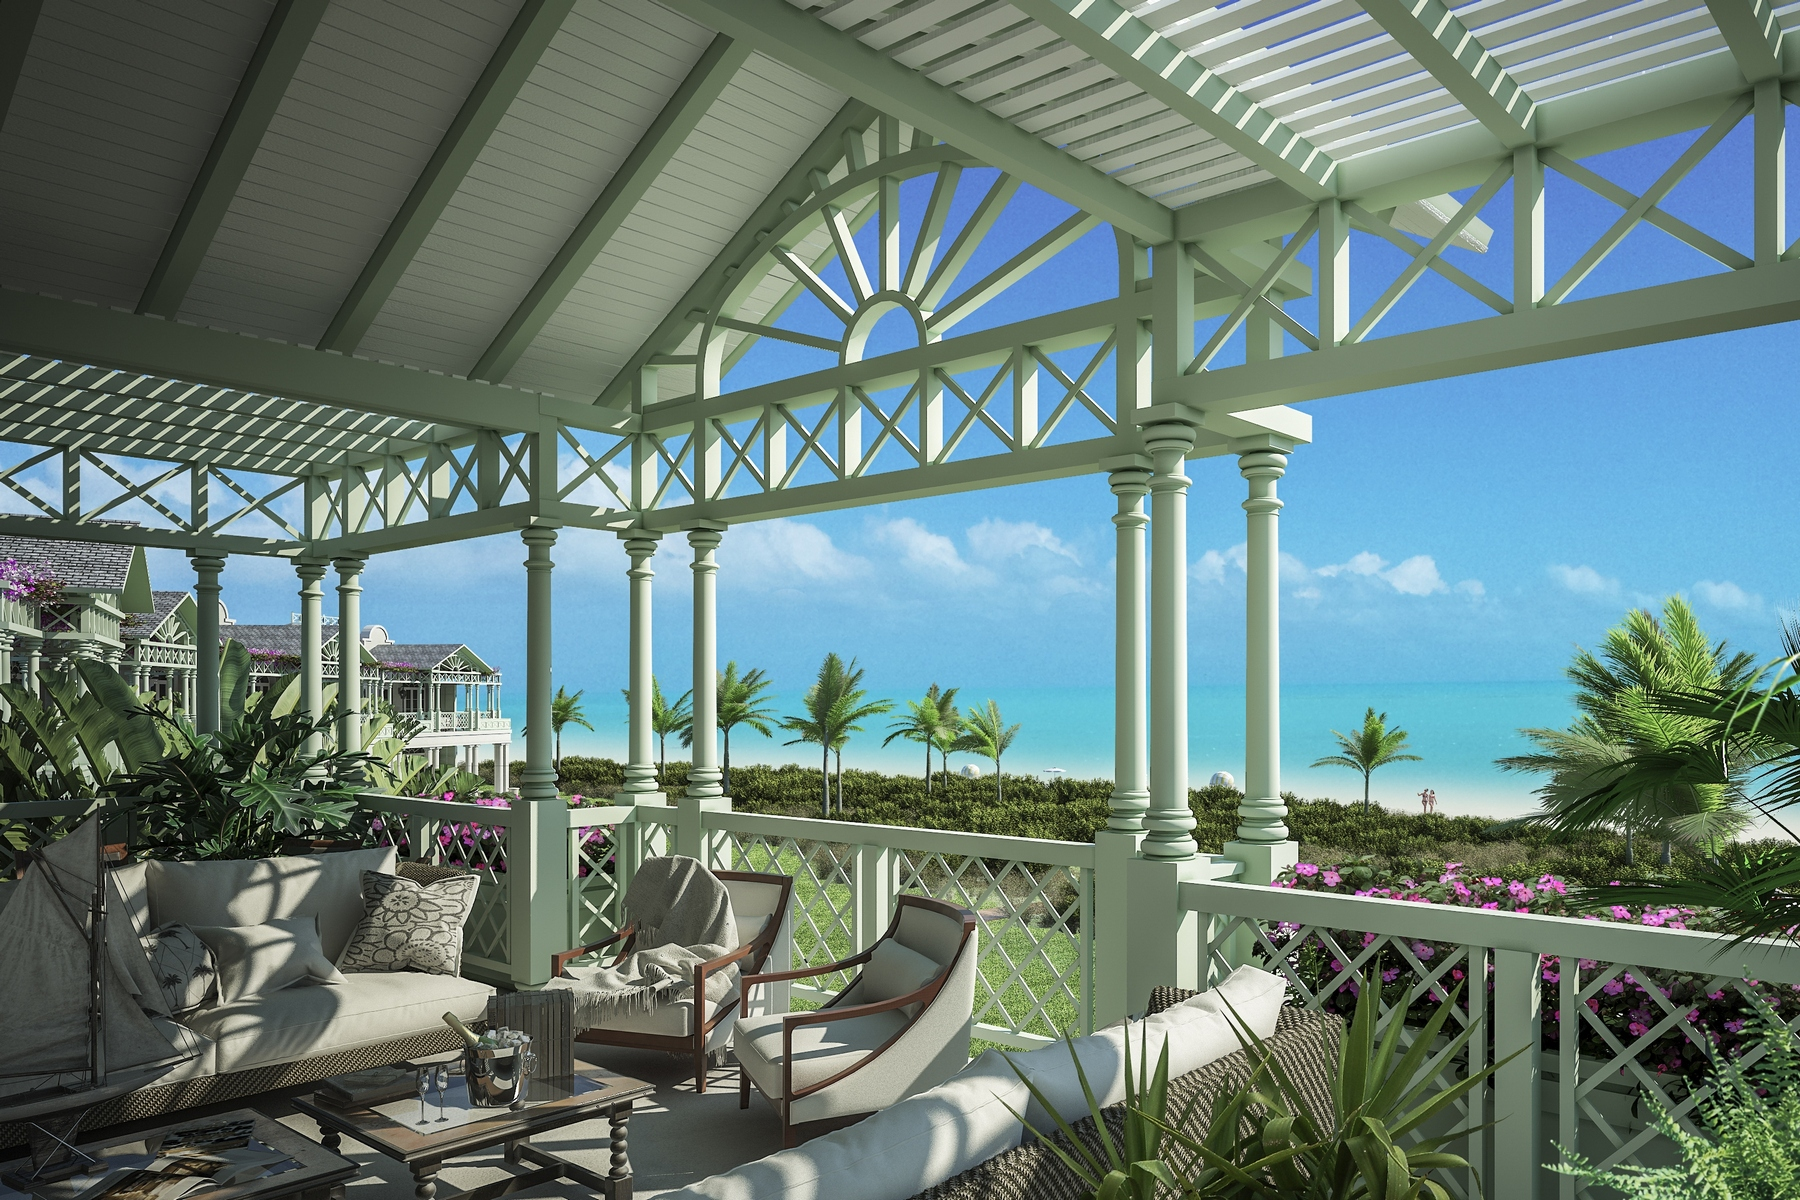 Single Family Home for Sale at The Shore Club ~ Villa 4 The Shore Club, Long Bay, Providenciales Turks And Caicos Islands